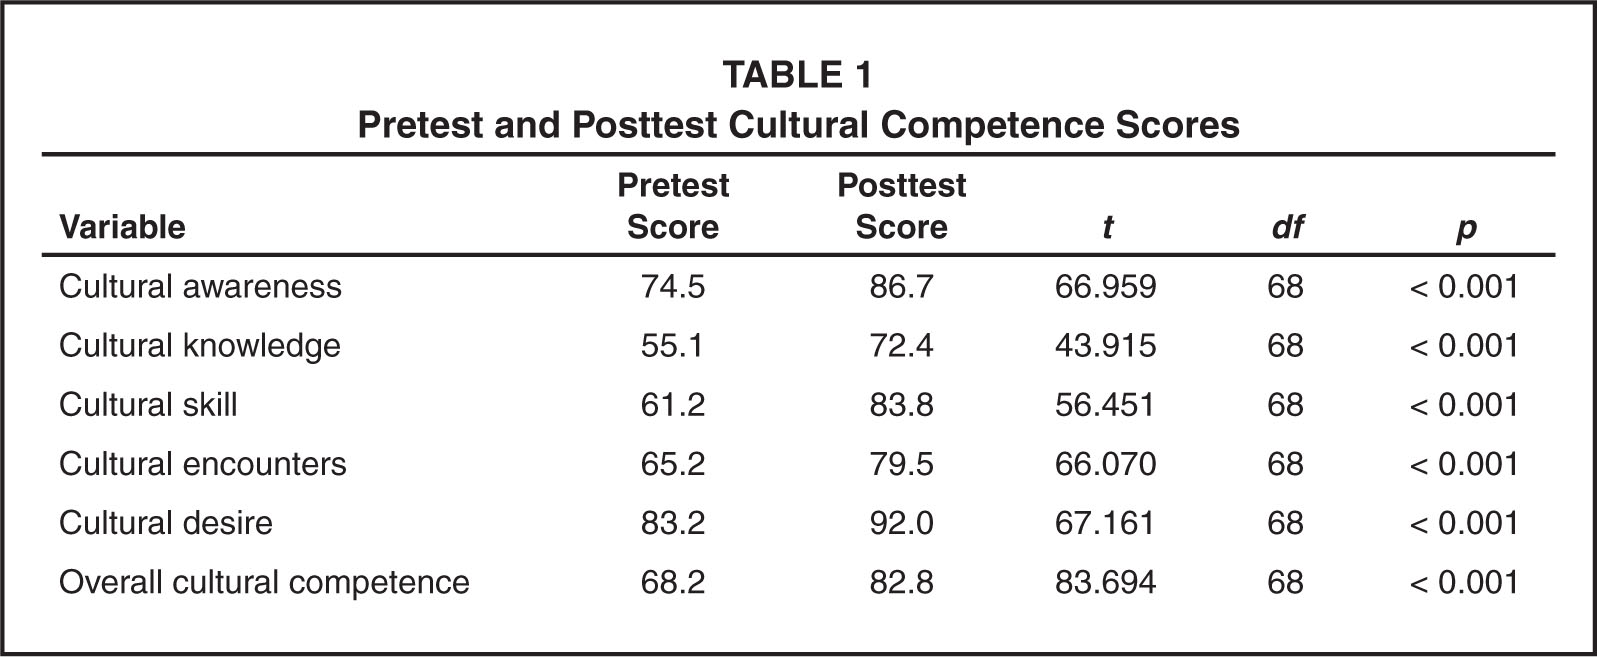 Pretest and Posttest Cultural Competence Scores